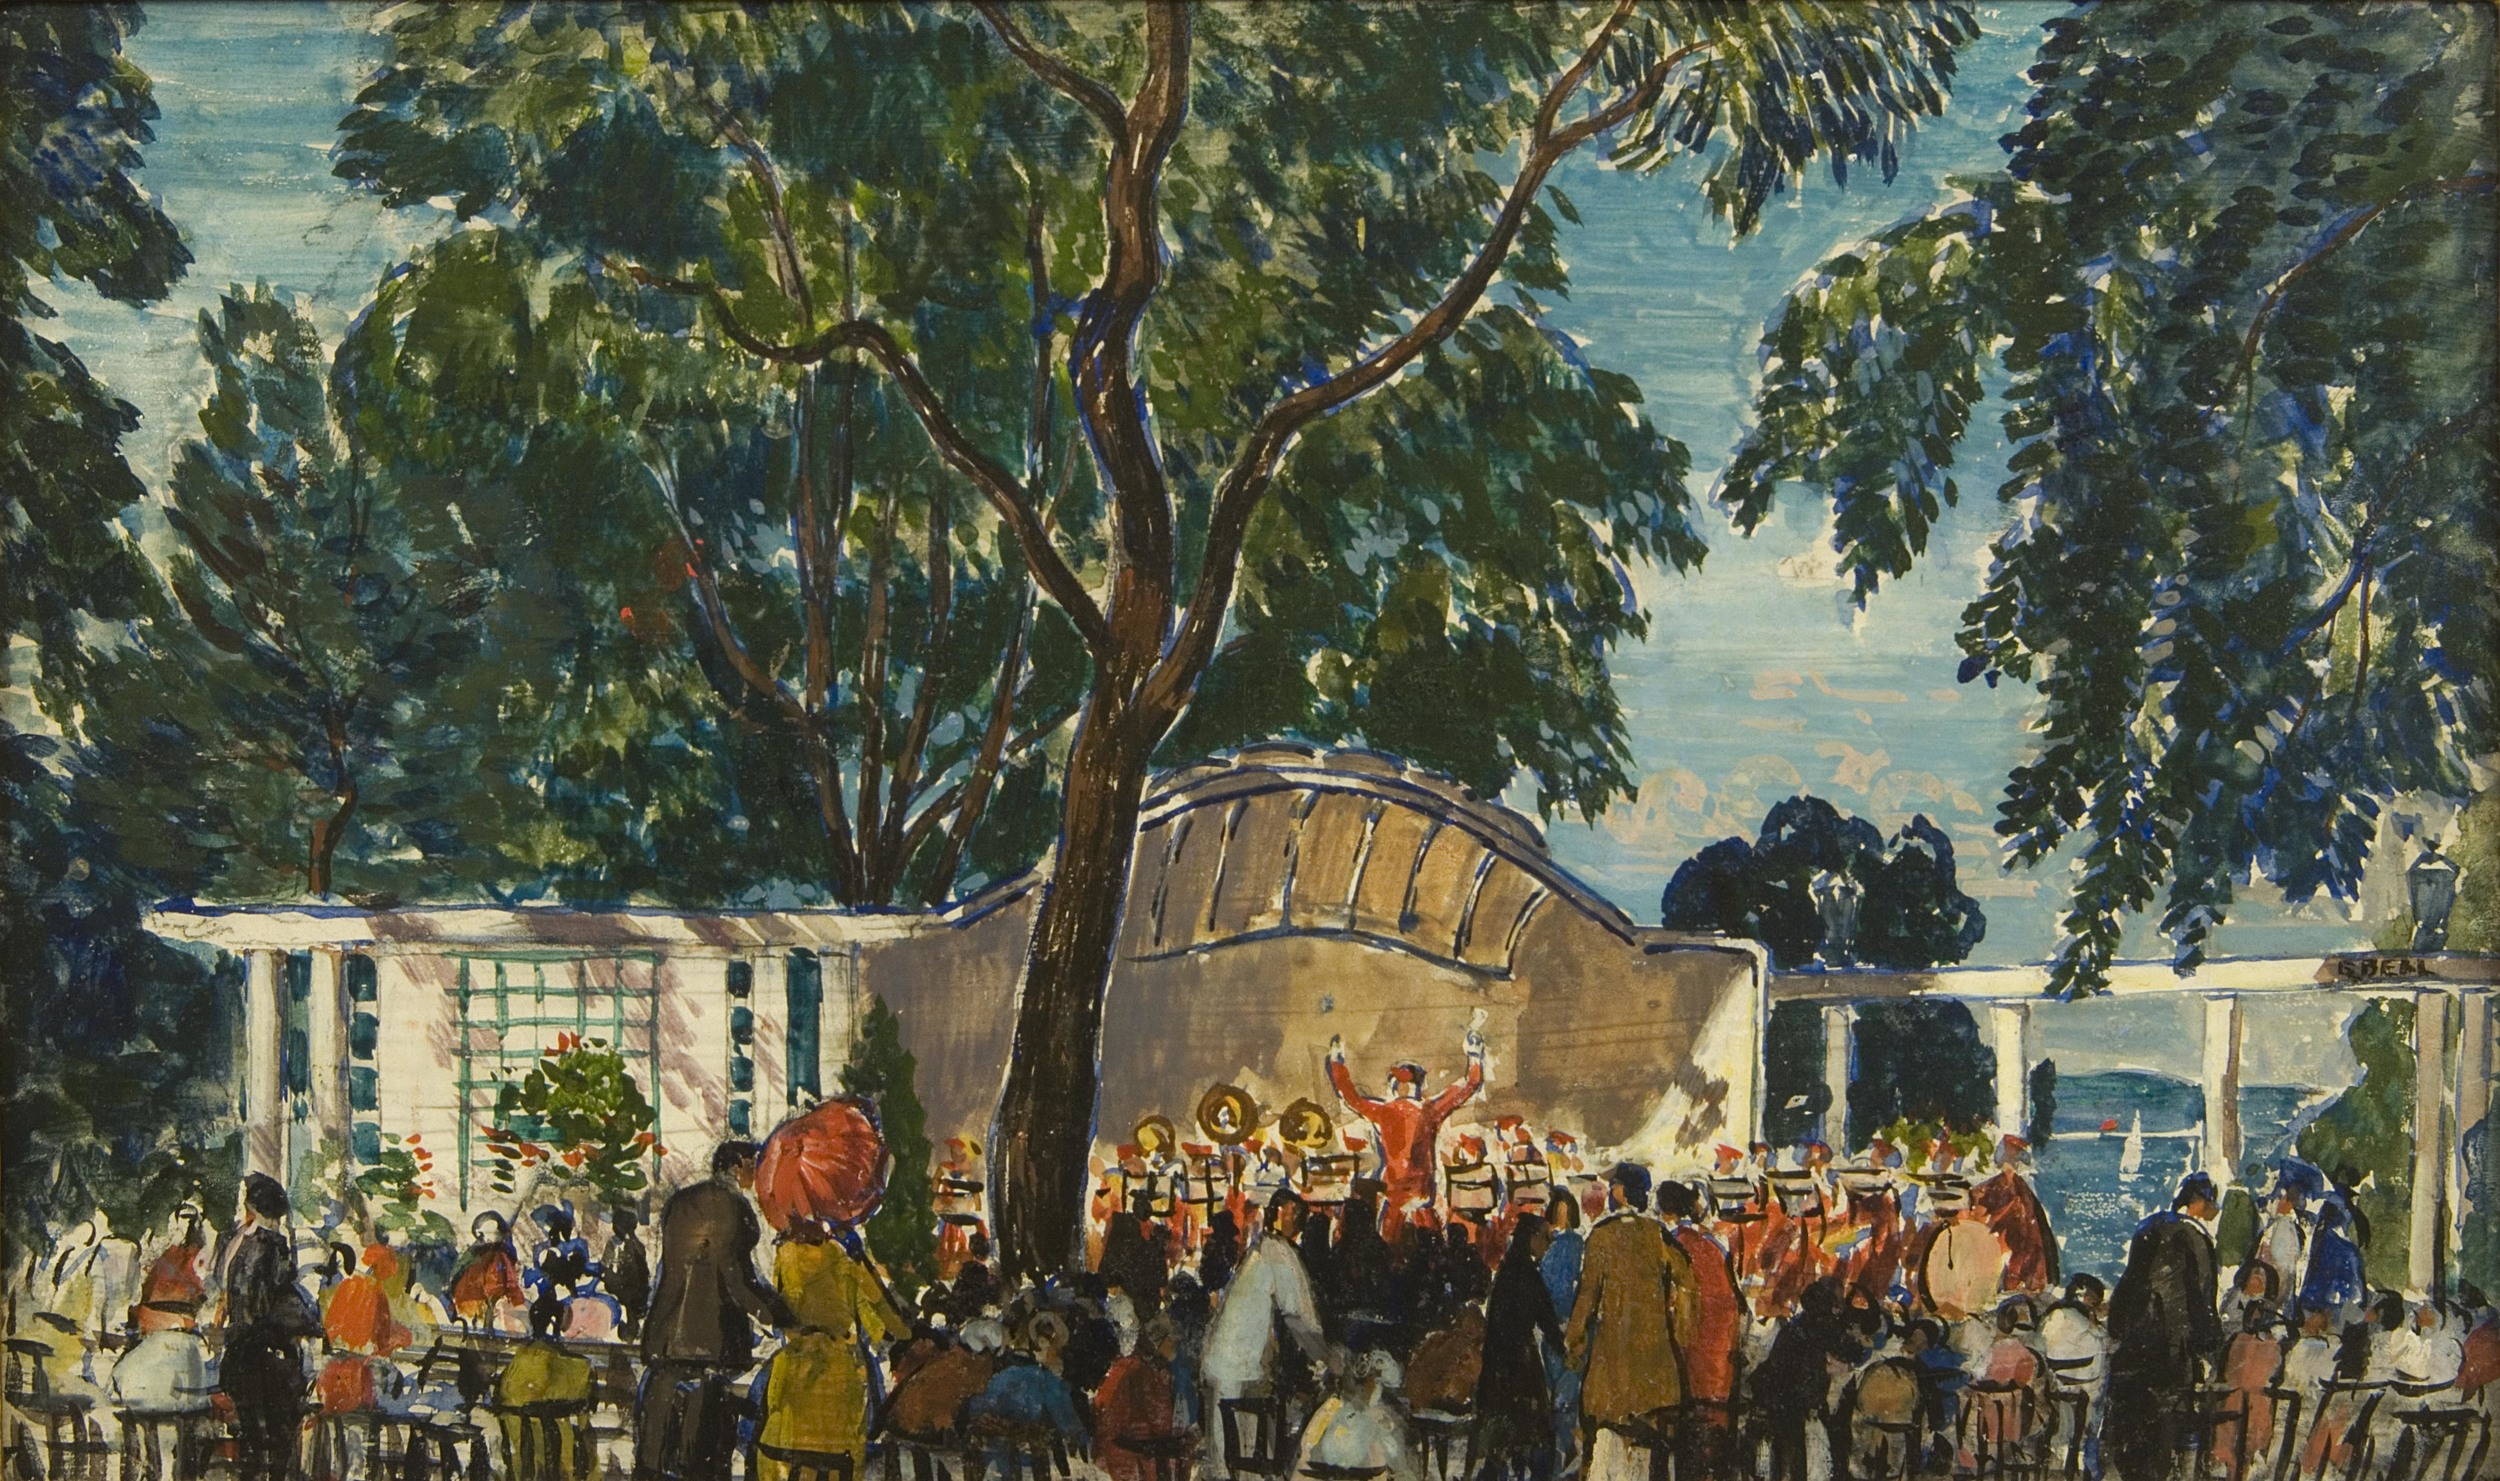 Painting of a bandstand and large crowd with large trees and water in distance